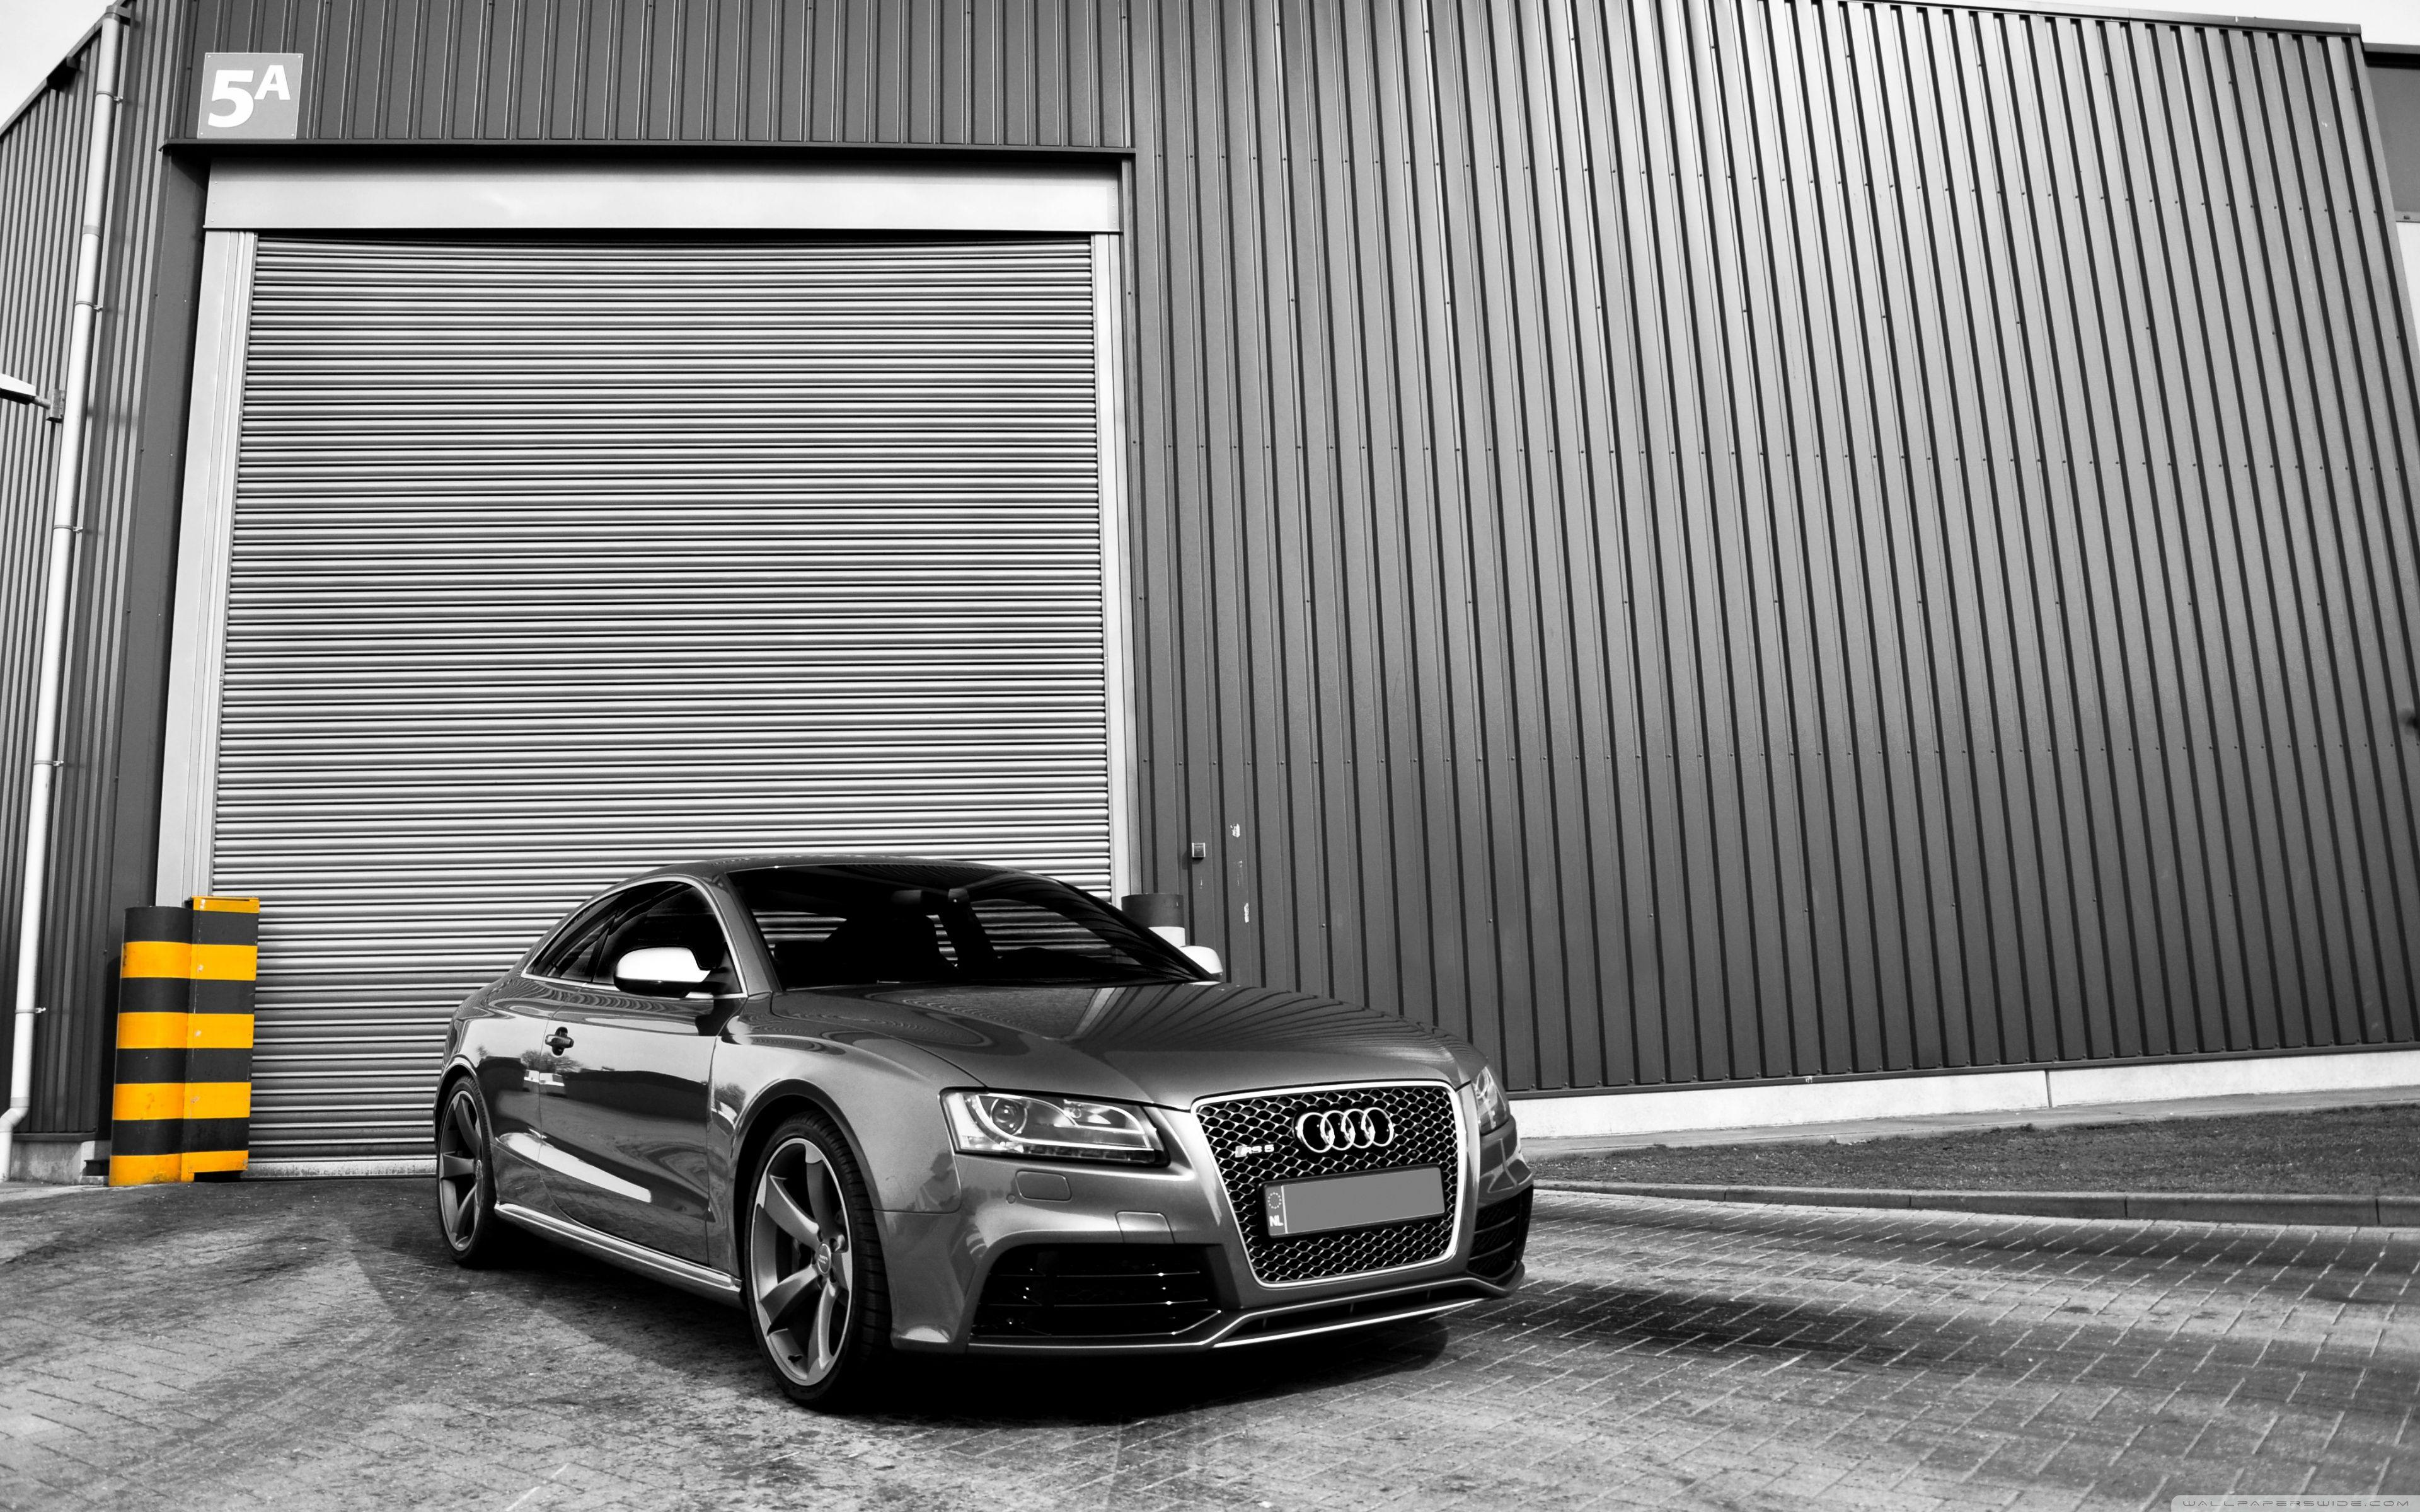 WallpapersWide.com | Audi HD Desktop Wallpapers for Widescreen ...